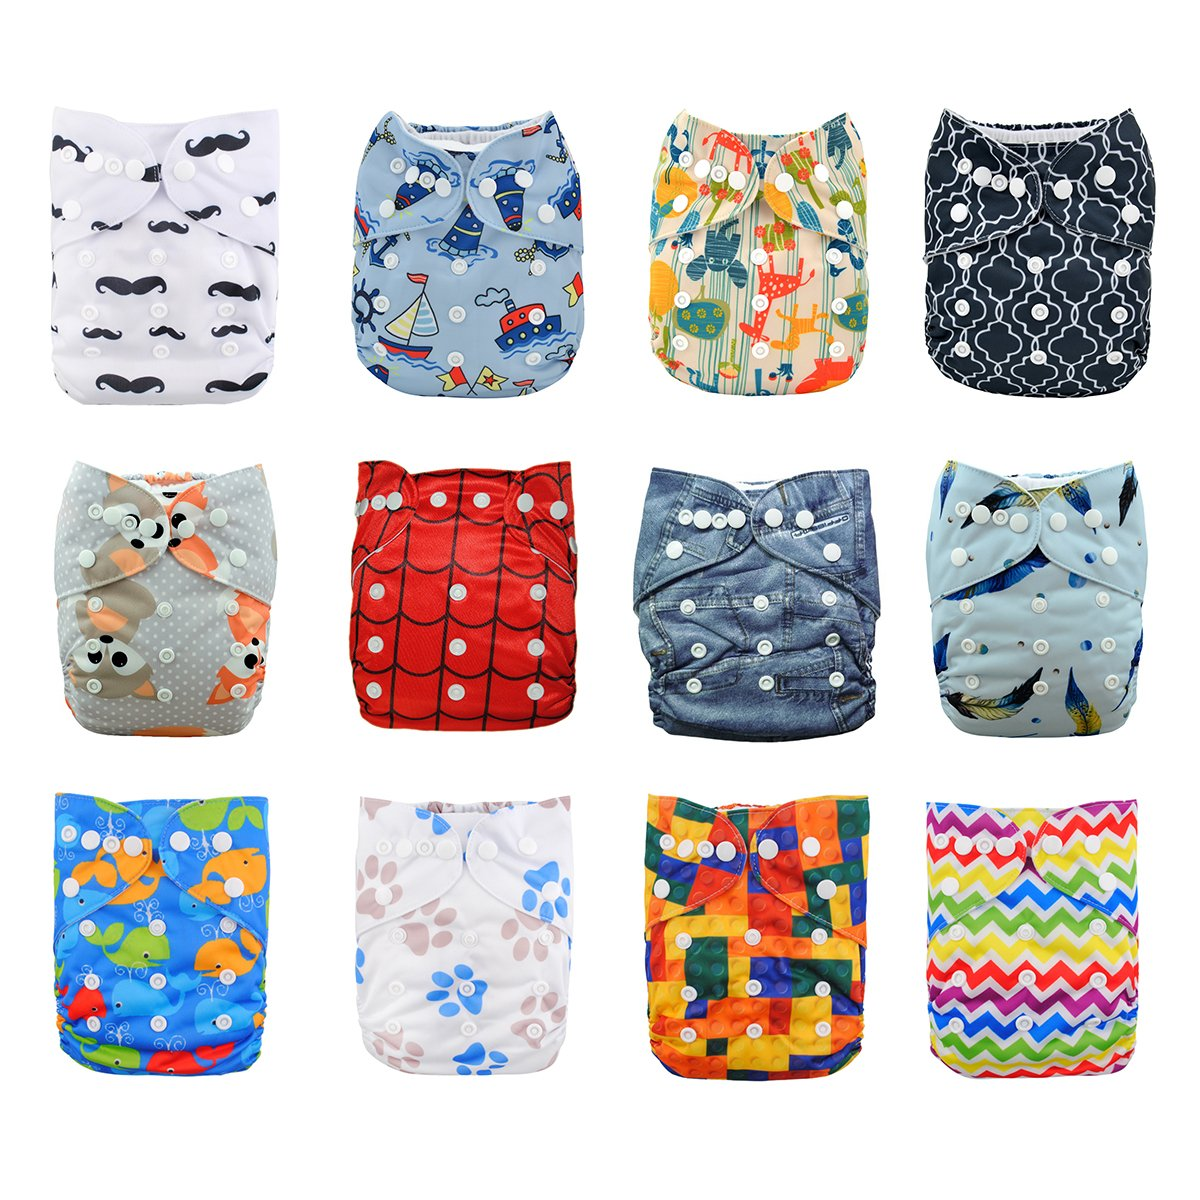 Babygoal Baby Cloth Diapers,One Size Adjustable Reusable Pocket 12pcs Diapers+12pcs Microfiber Inserts+Wet Bag+4pcs Baby Wipes+1pc Swim Diaper 12fn46-1